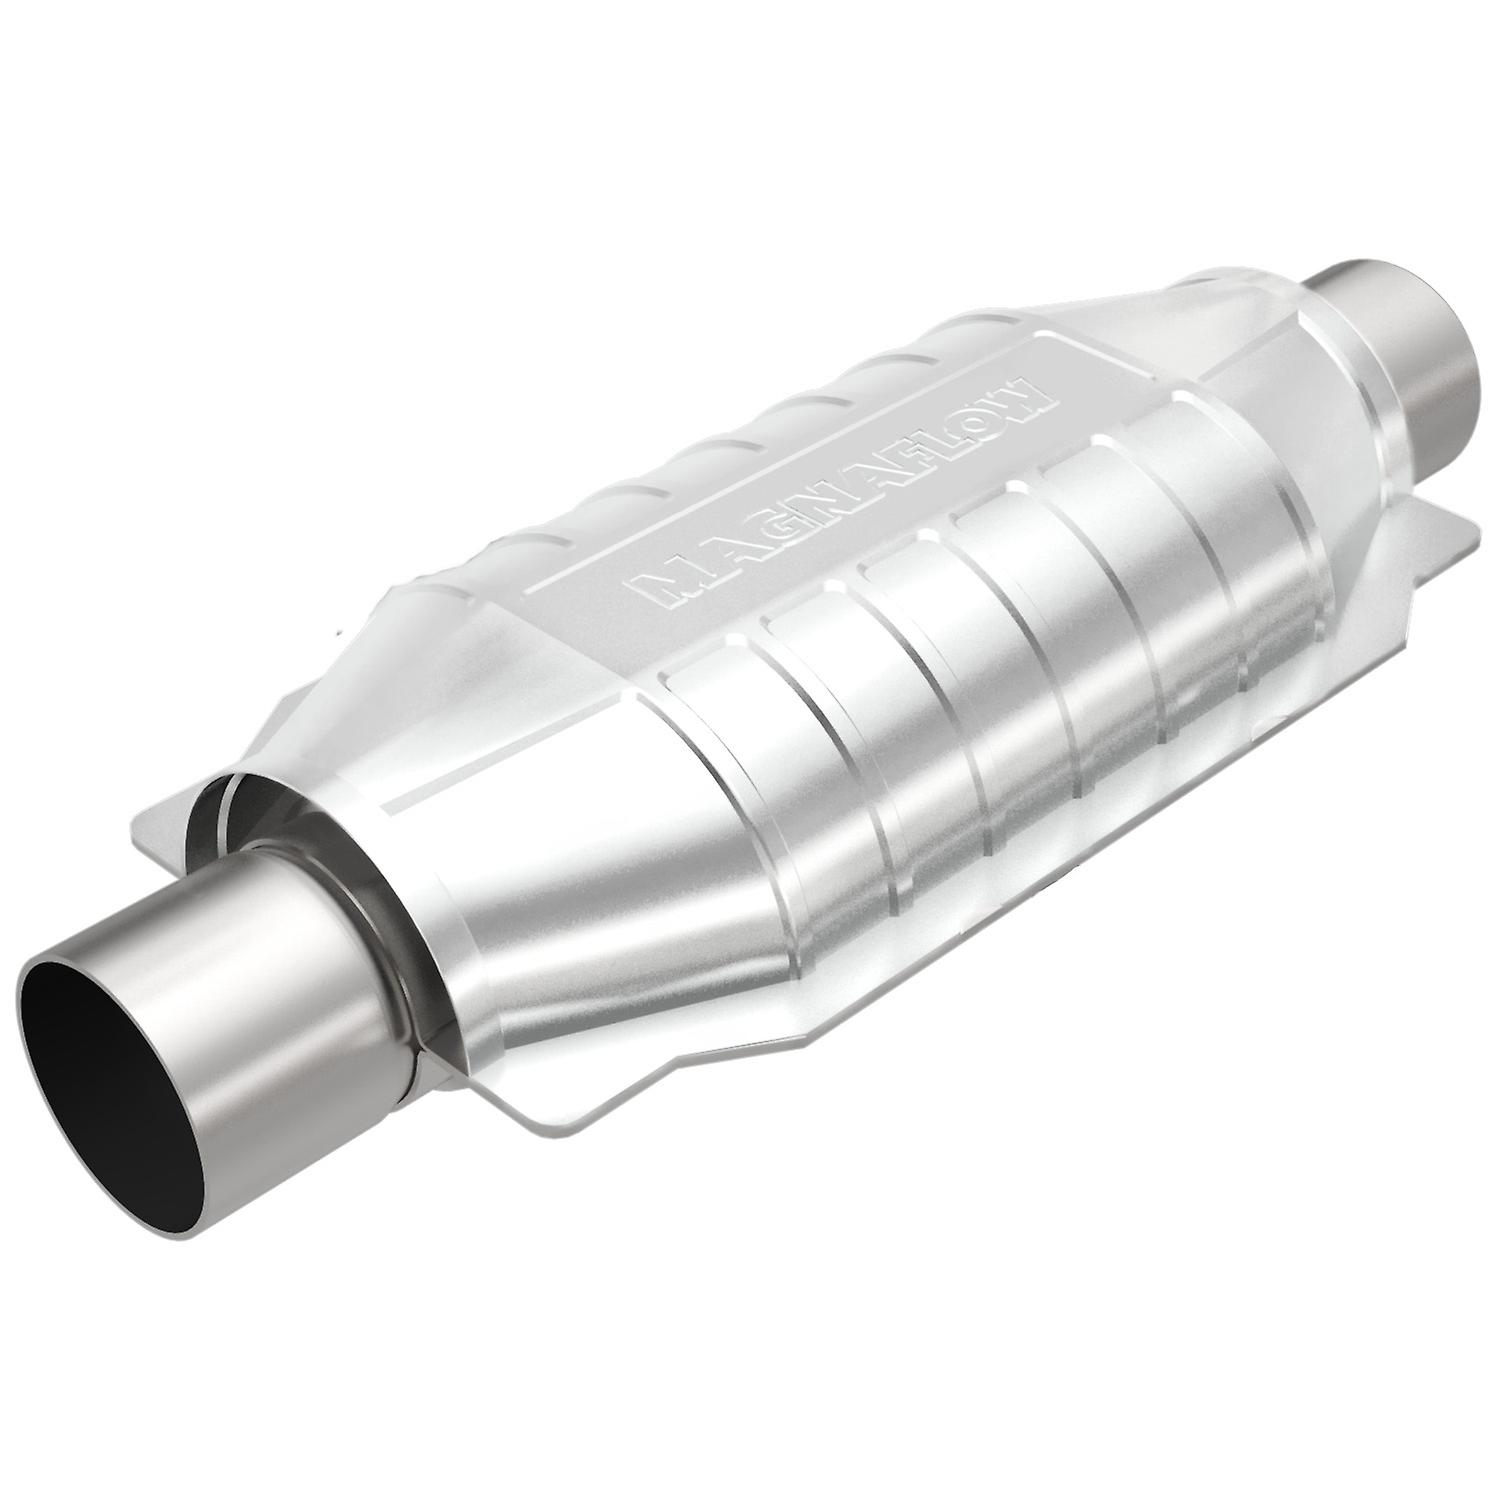 MagnaFlow Exhaust Products 94006 Standard Grade